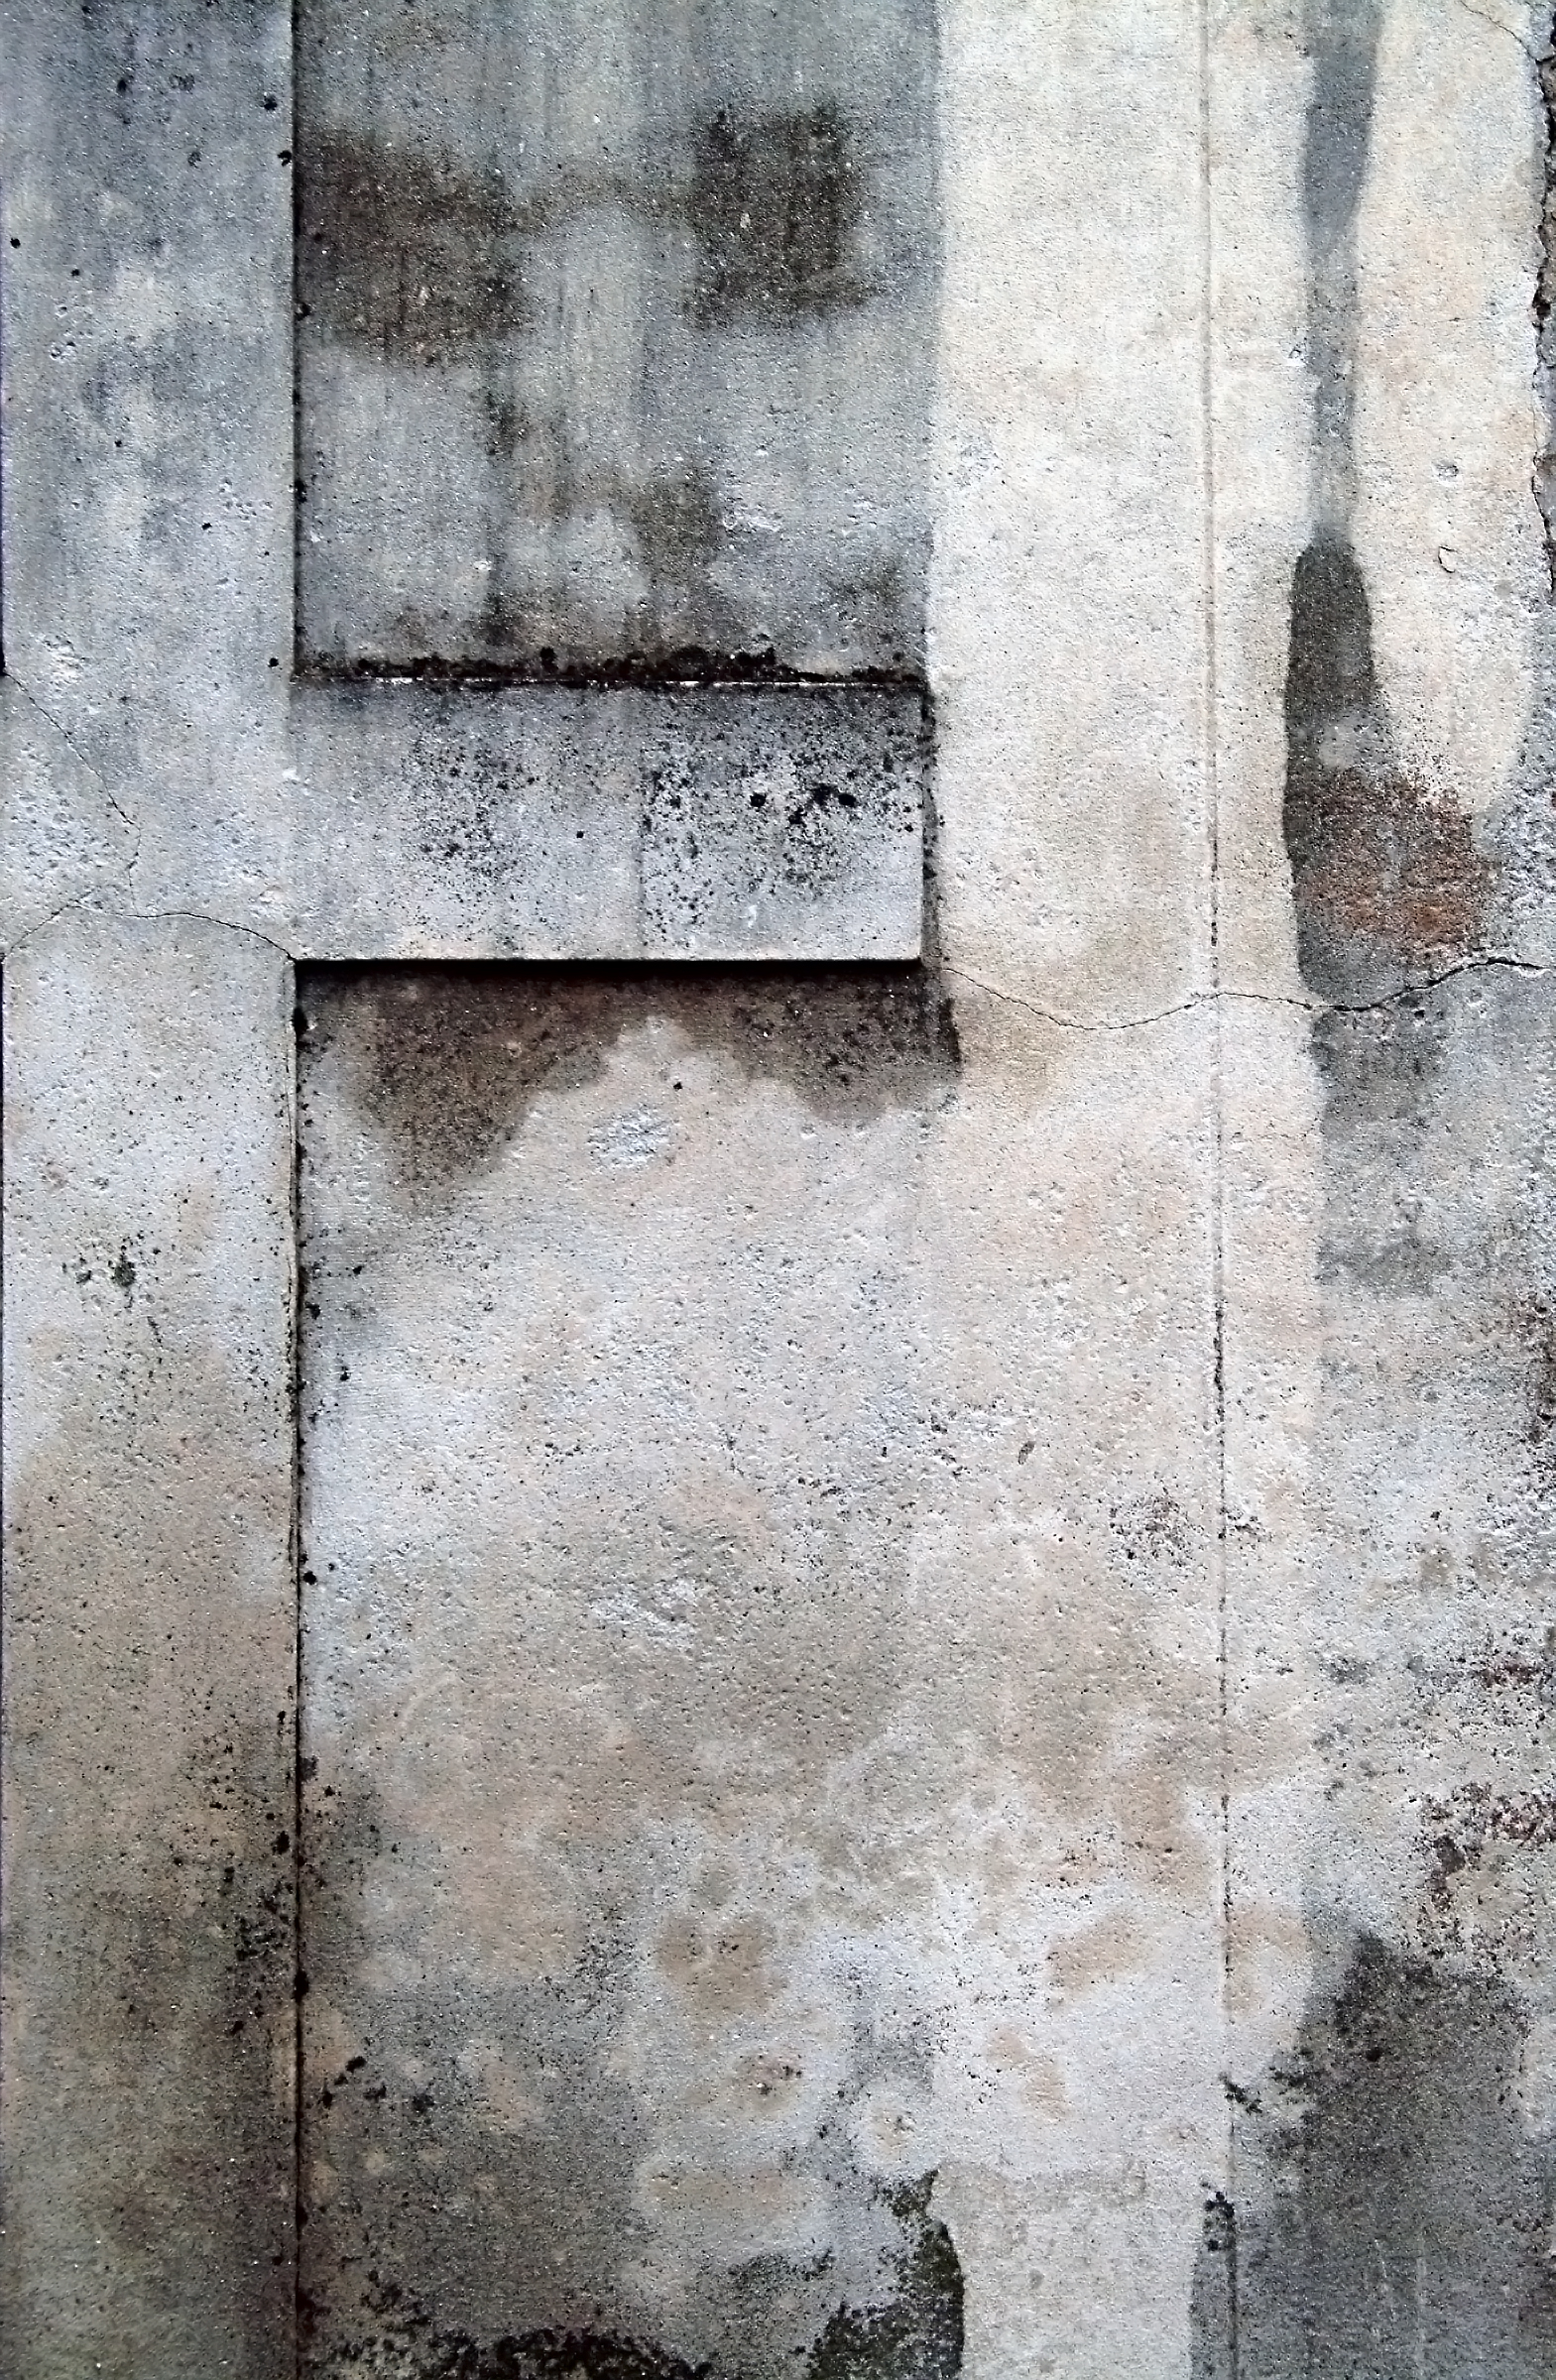 19 erosion and stains on wall.jpg